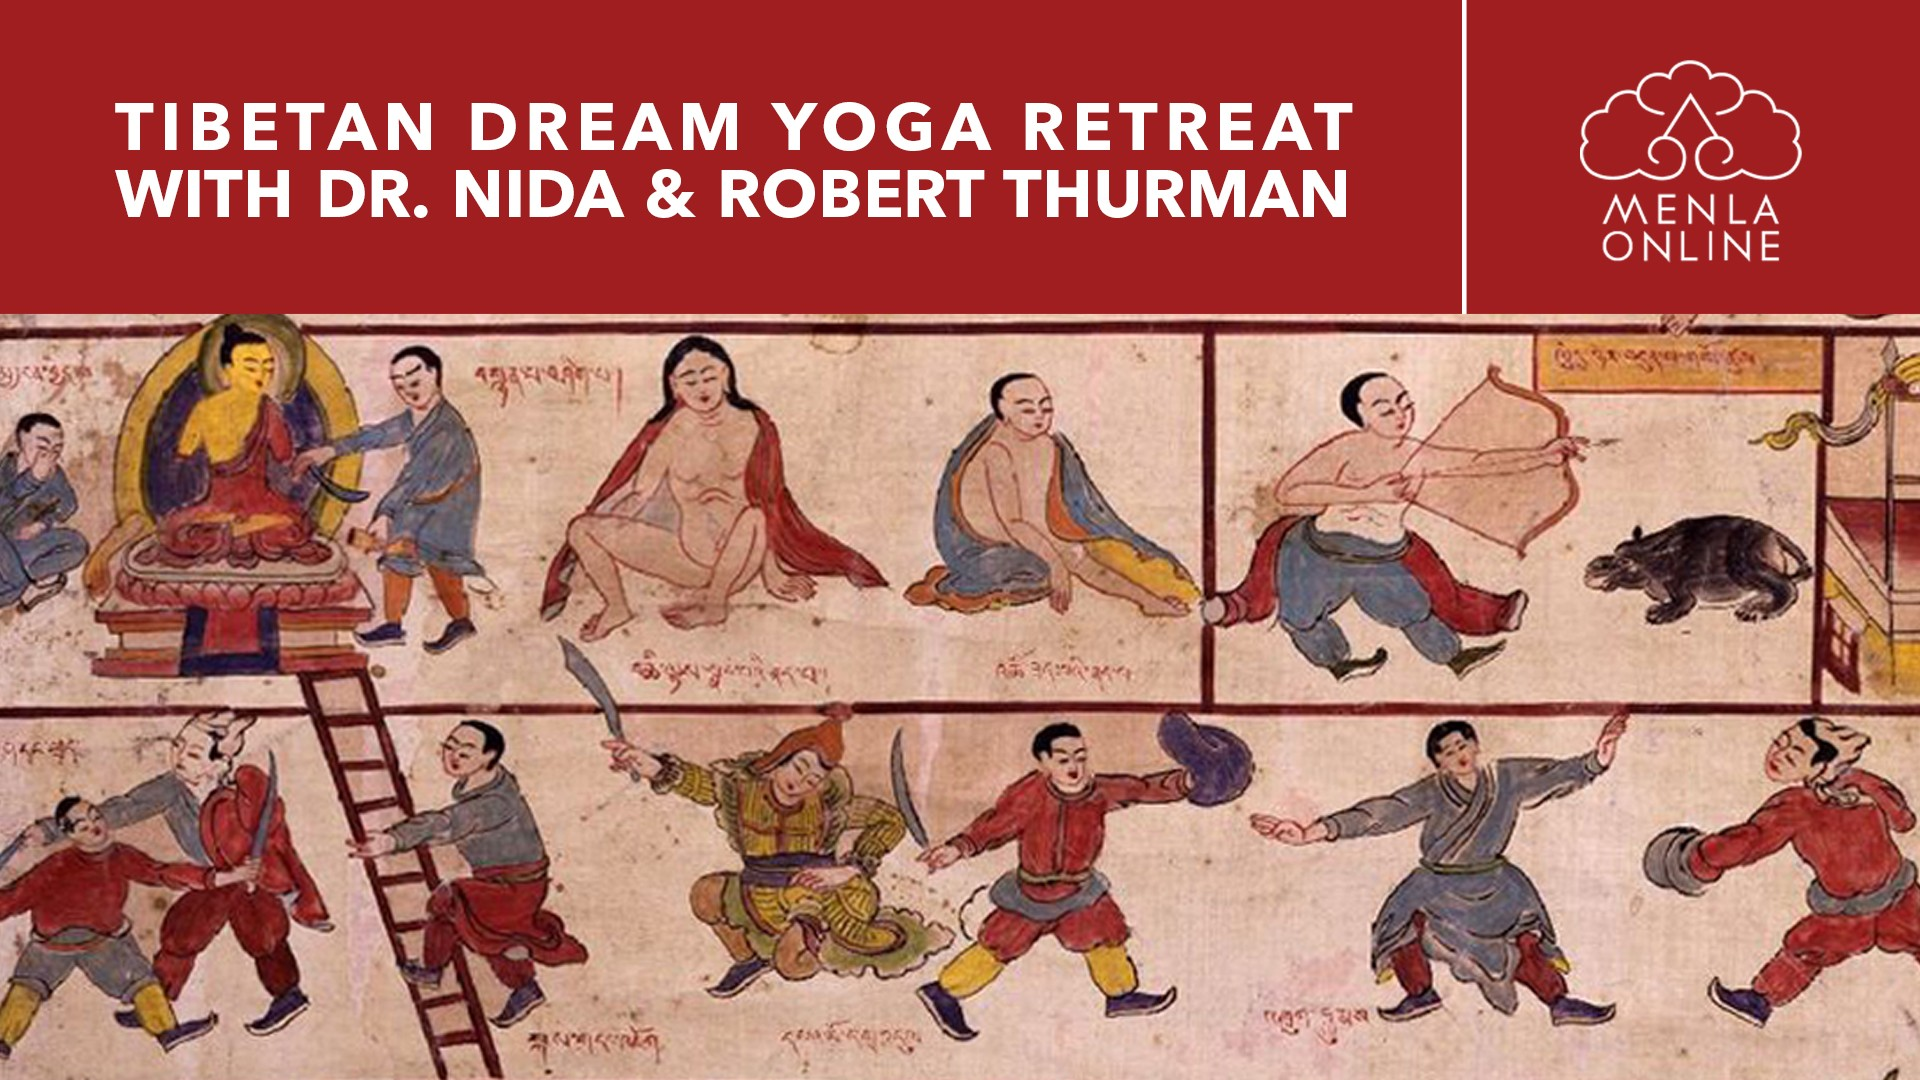 Tibetan Dream Yoga: An Online Retreat with Dr. Nida Chenagtsang and Robert A.F. Thurman May 1st - May 3rd, 2020 Presented by Tibet House US   Menla Online & Pure Land Farms https://bit.ly/DreamYogaOnline